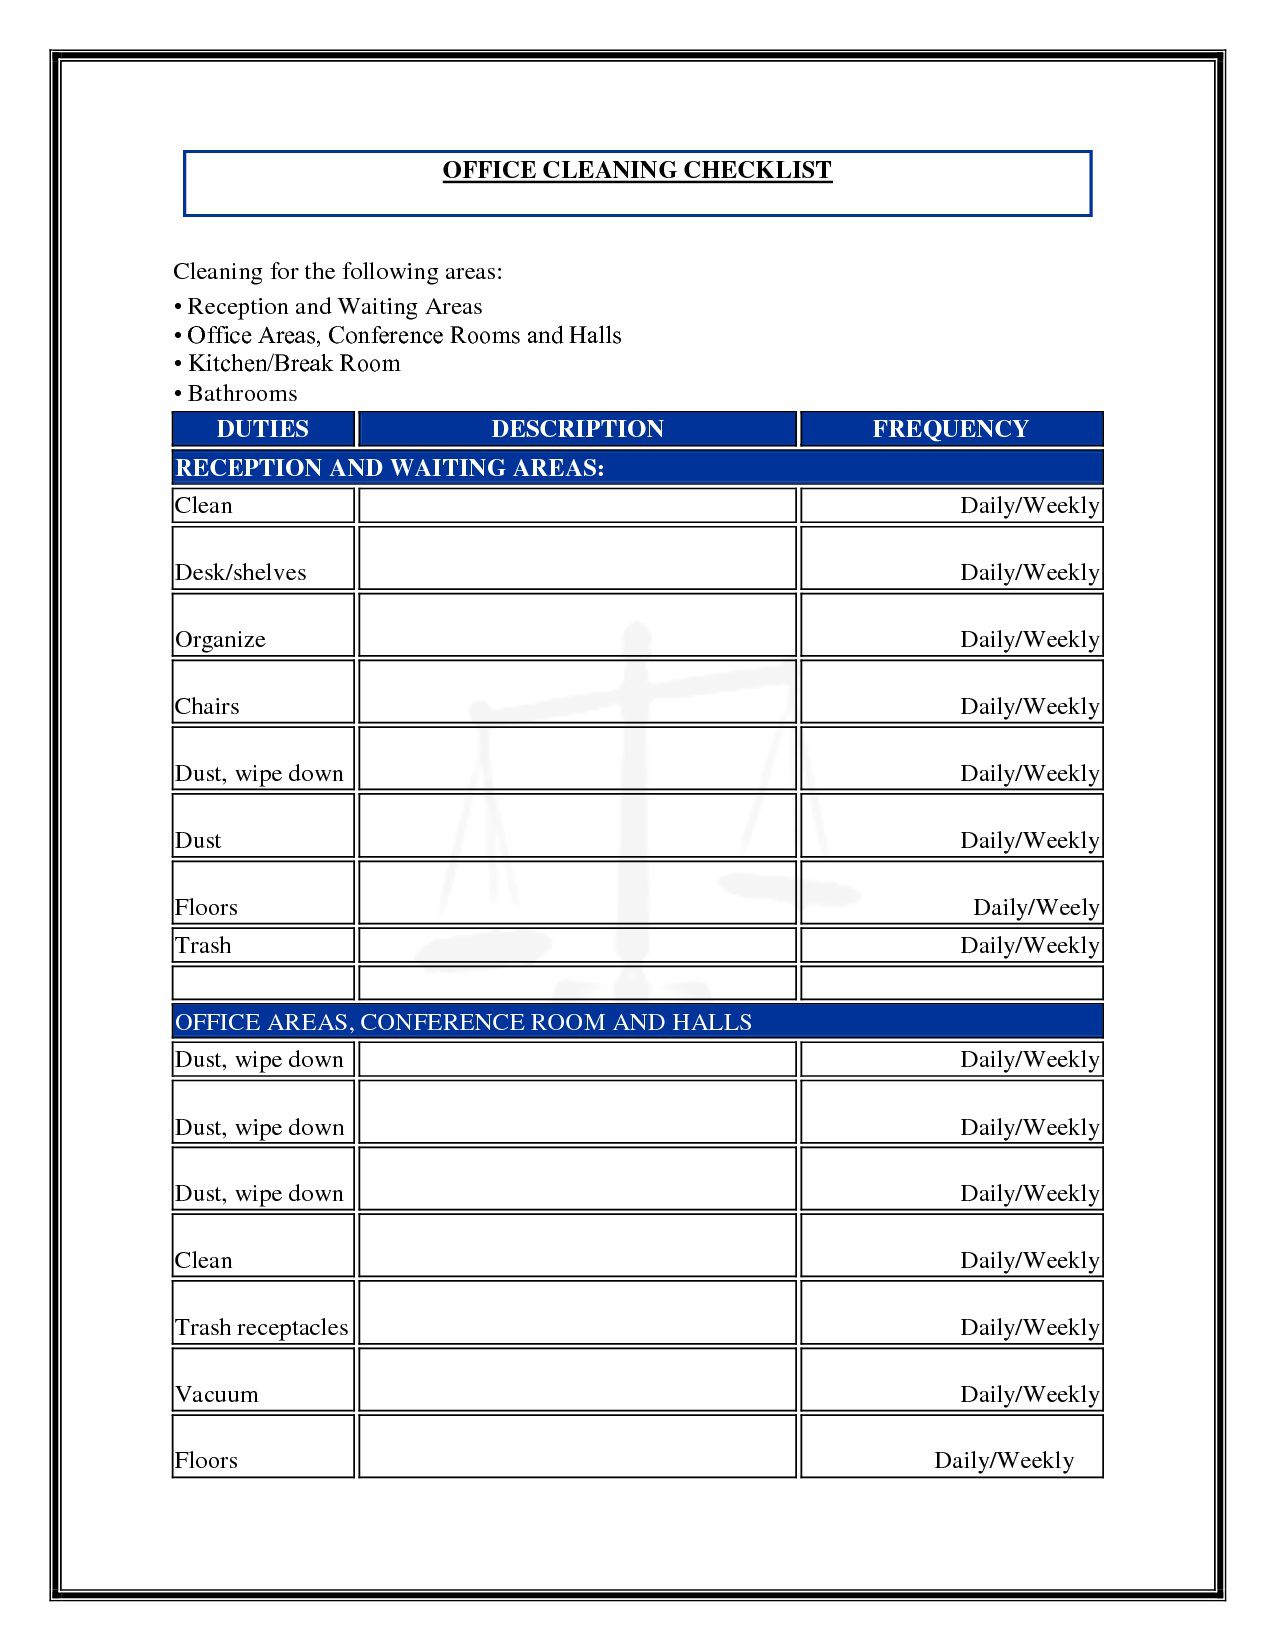 Cleaning Schedule Template For Office ~ Addictionary